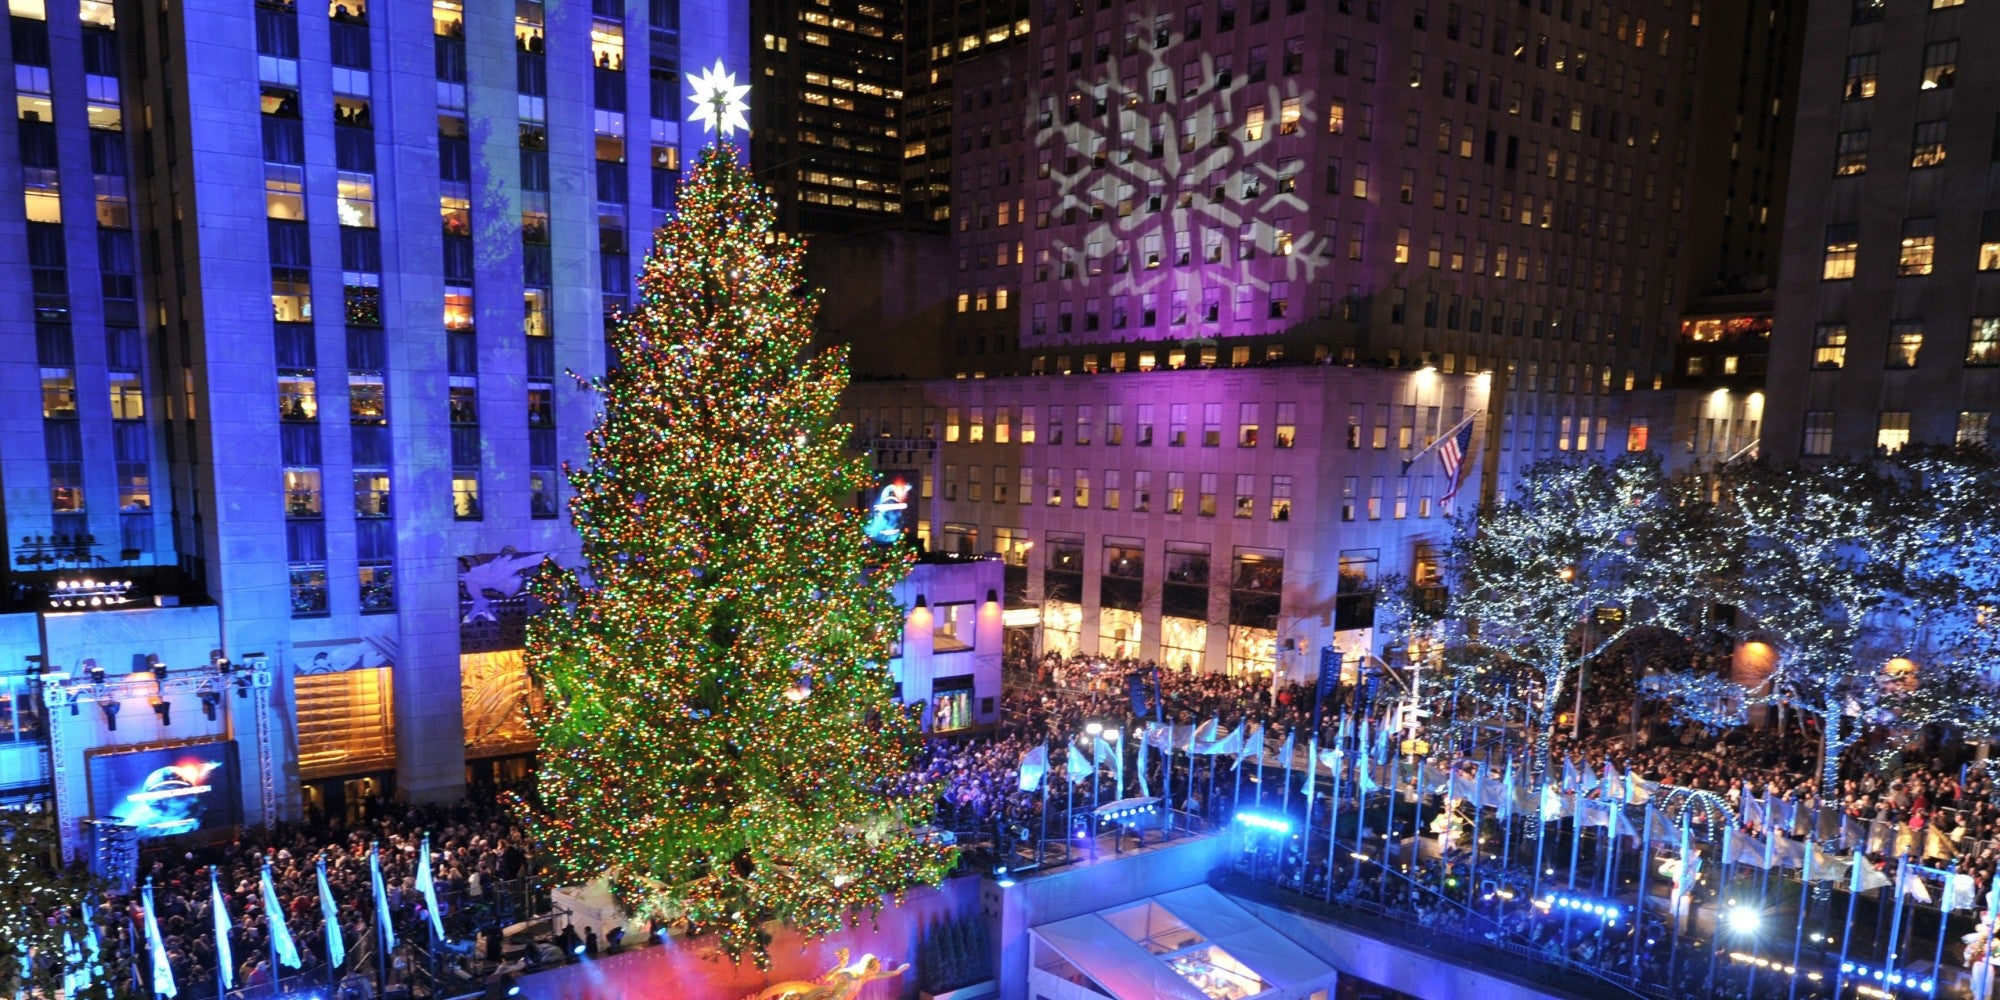 Albero del Rockefeller Center